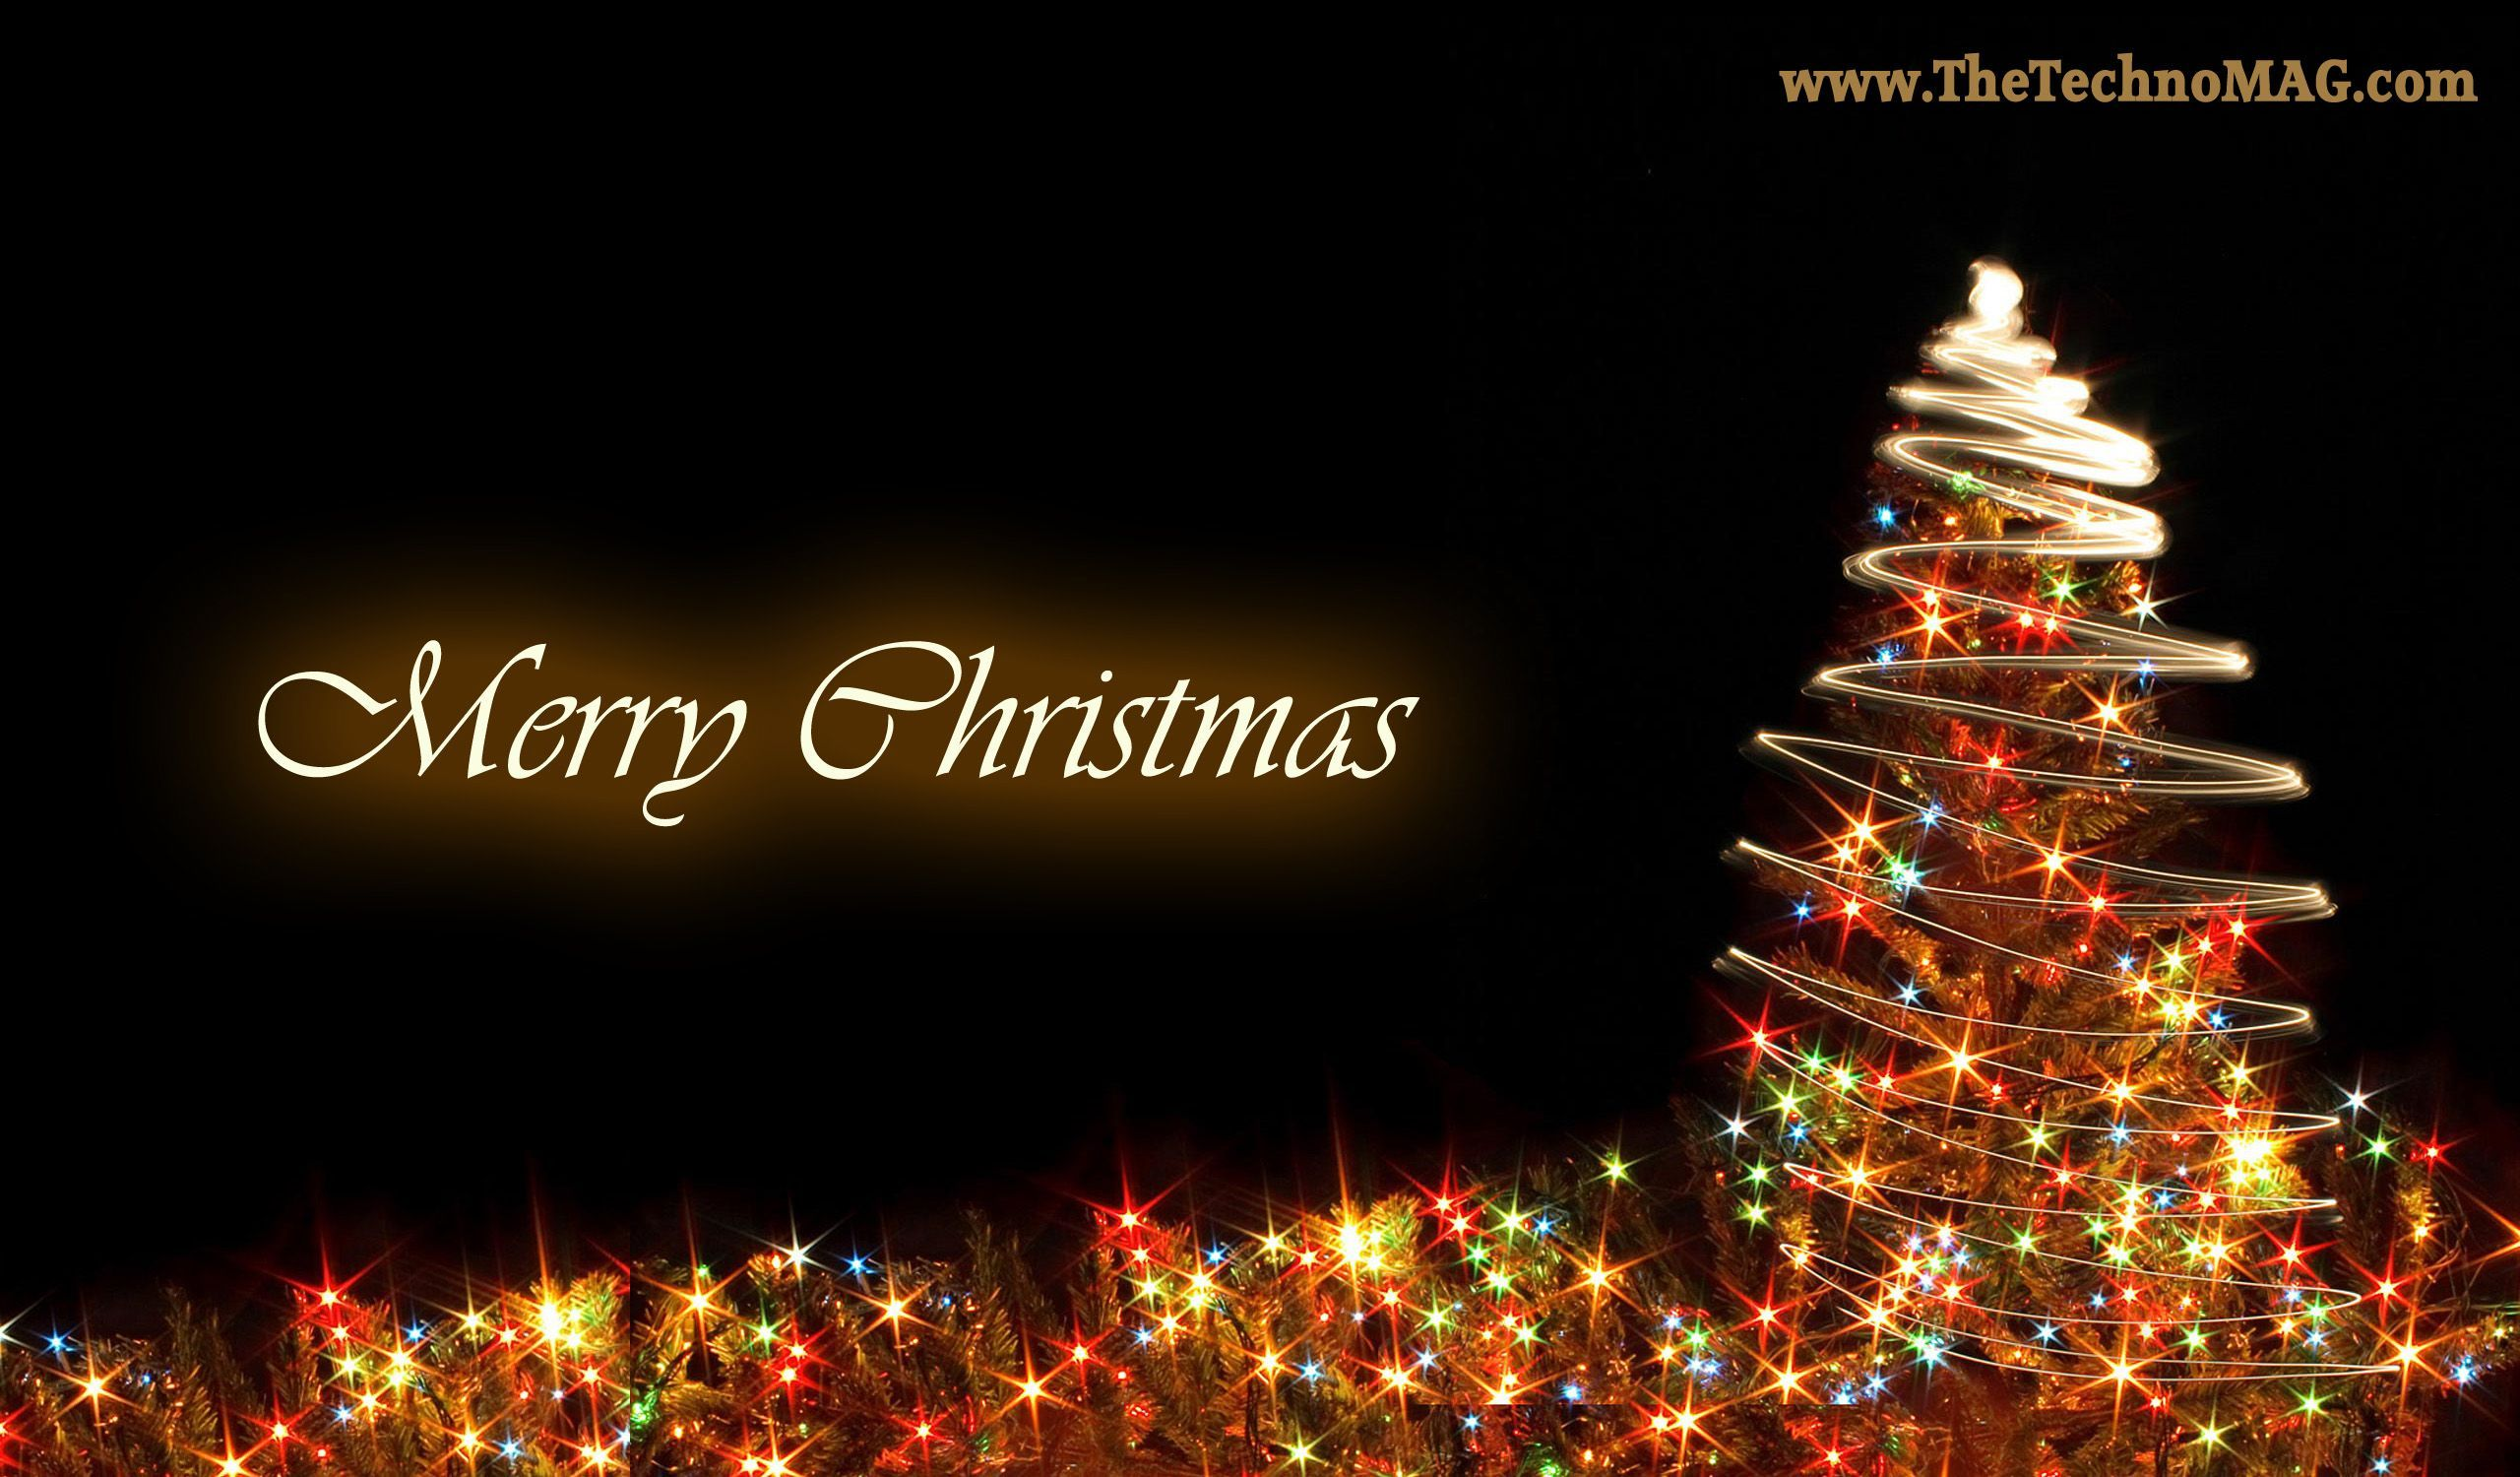 Merry Christmas Wallpapers Hd For Desktop Christmas Desktop Merry Christmas Wallpaper Merry Christmas Pictures